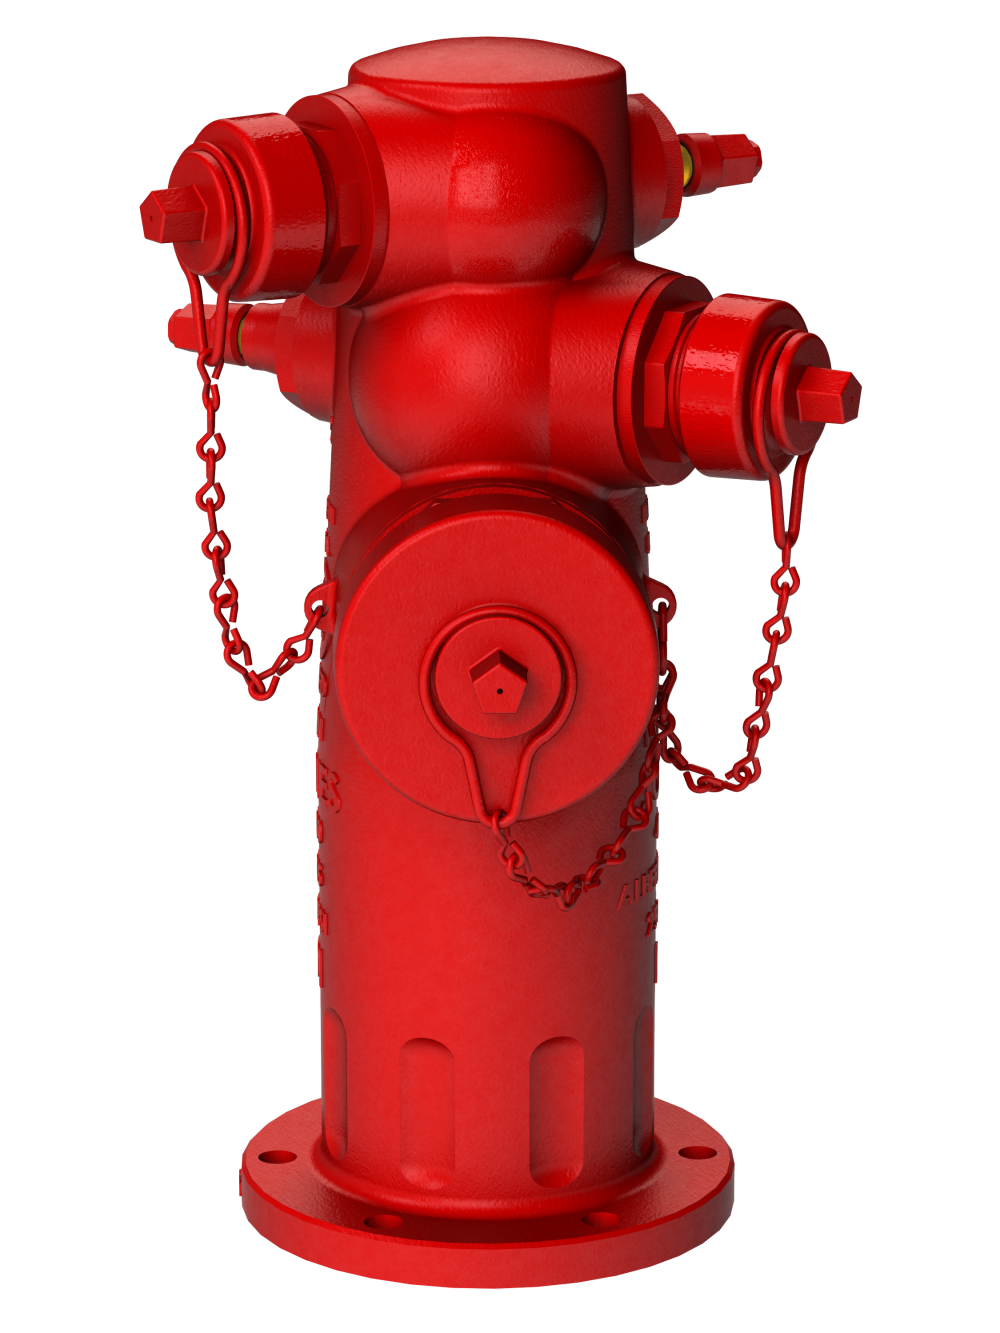 medium resolution of fire hydrant png icon clipart web icons